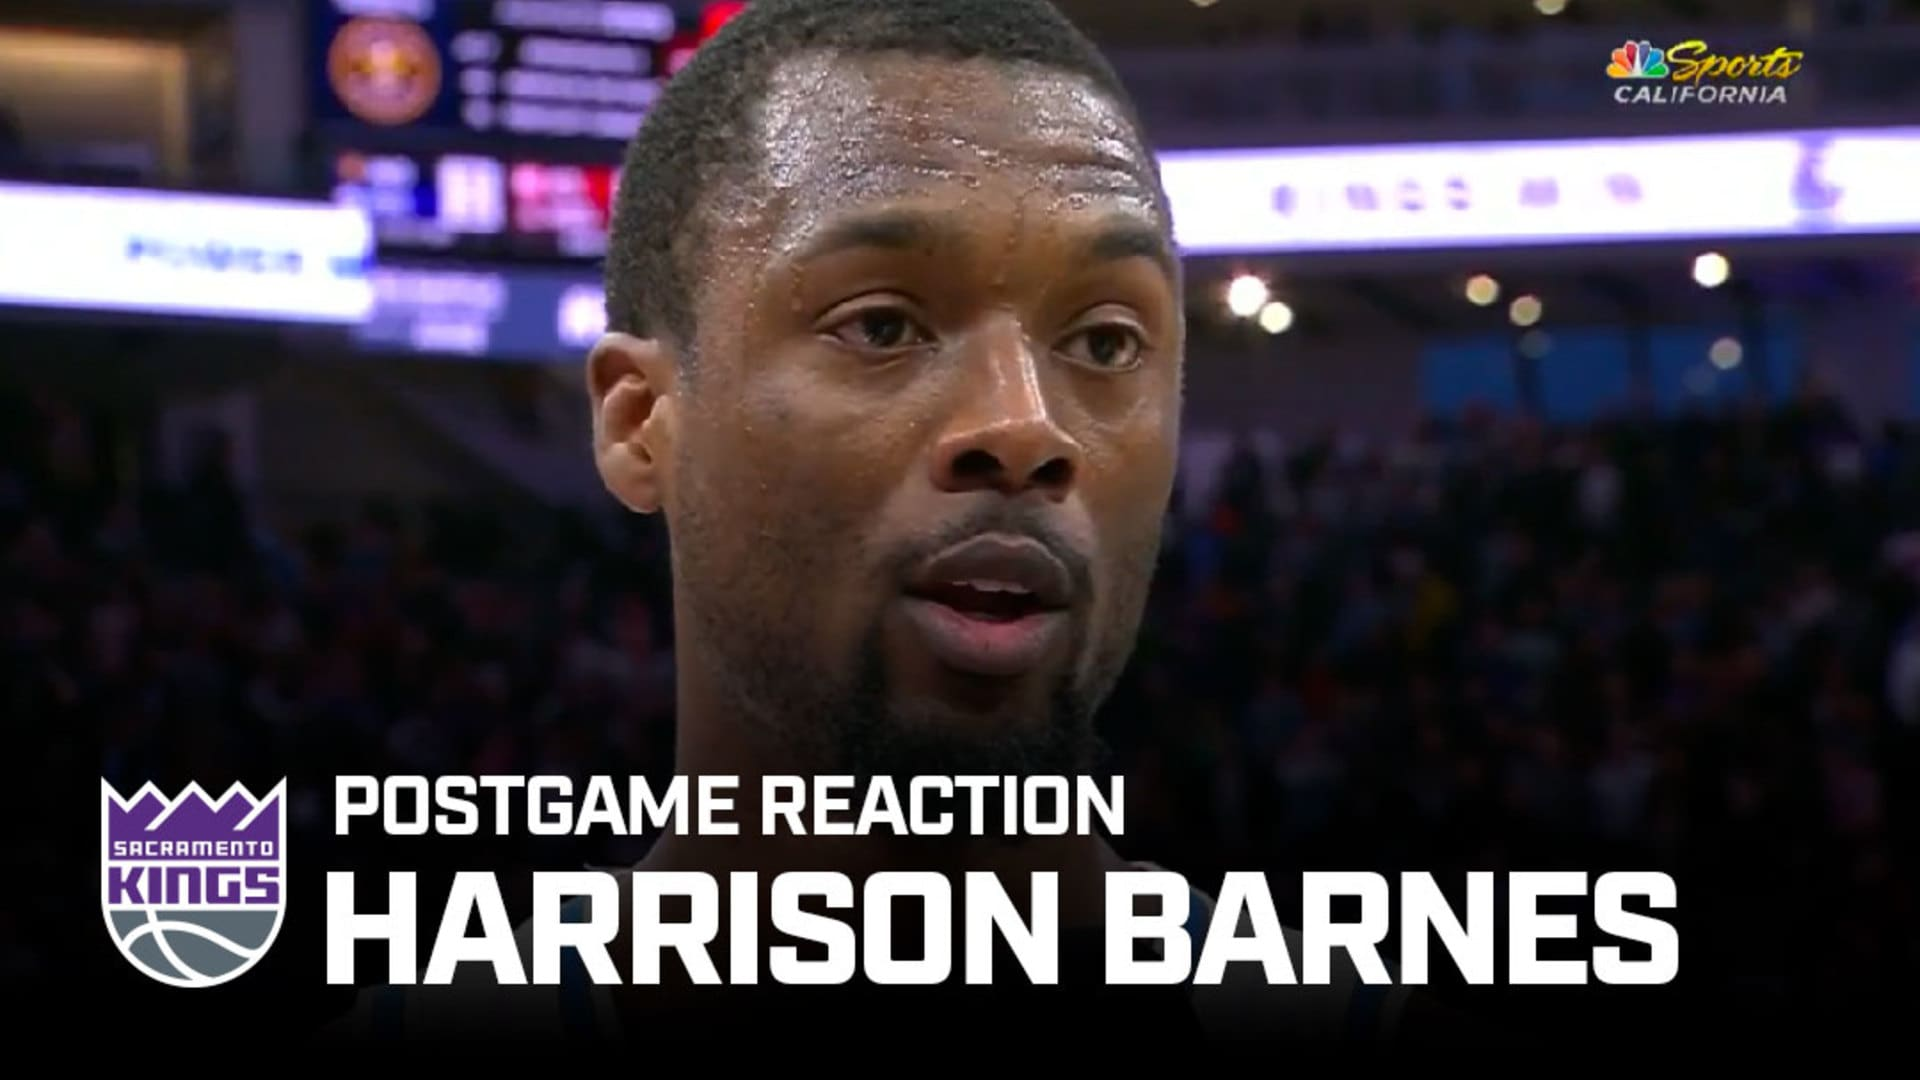 'Everyone On This Team Made Big Plays' | Harrison Barnes Postgame Reaction 11.30.19